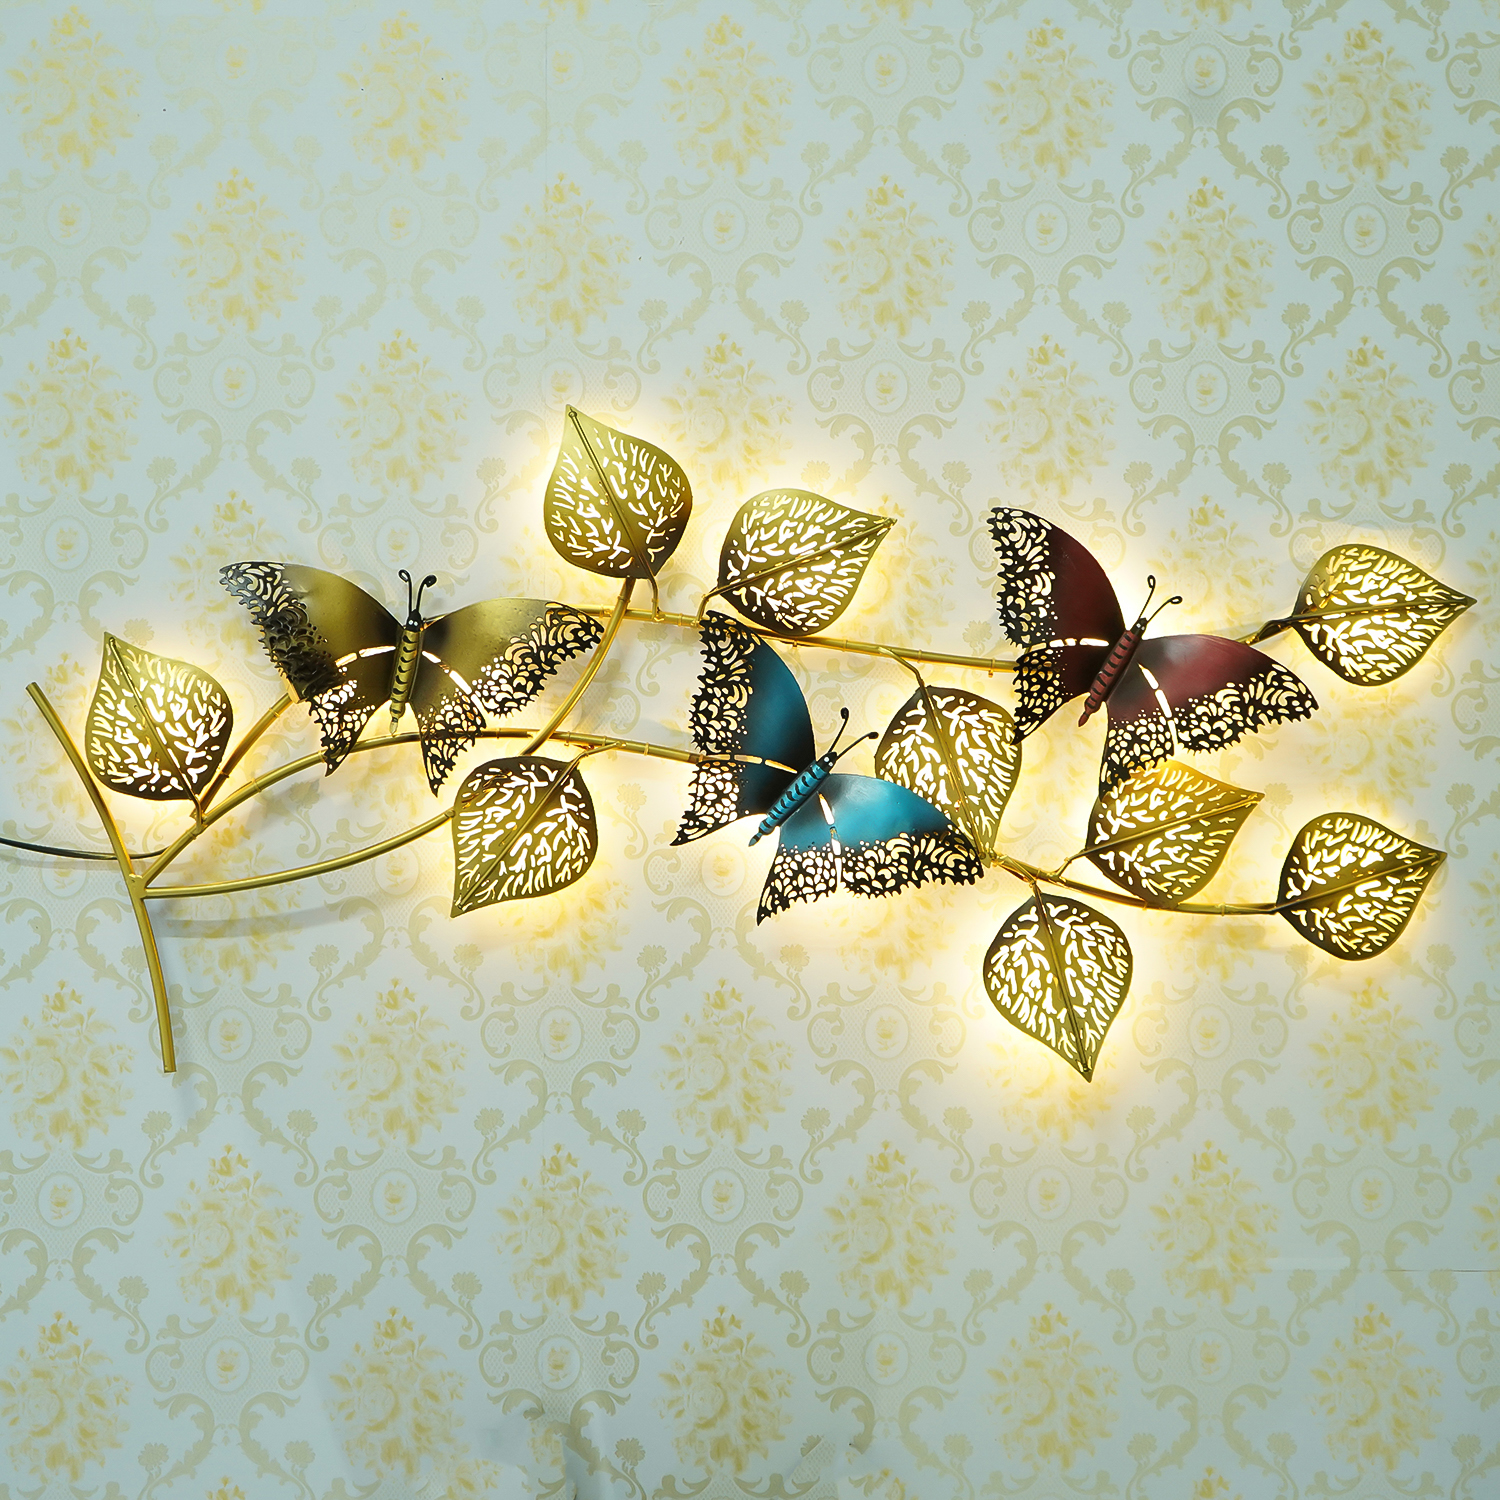 Decorative Leaves and Butterfly Design Handcrafted Iron Wall Hanging with background LEDs Indian Home Decor